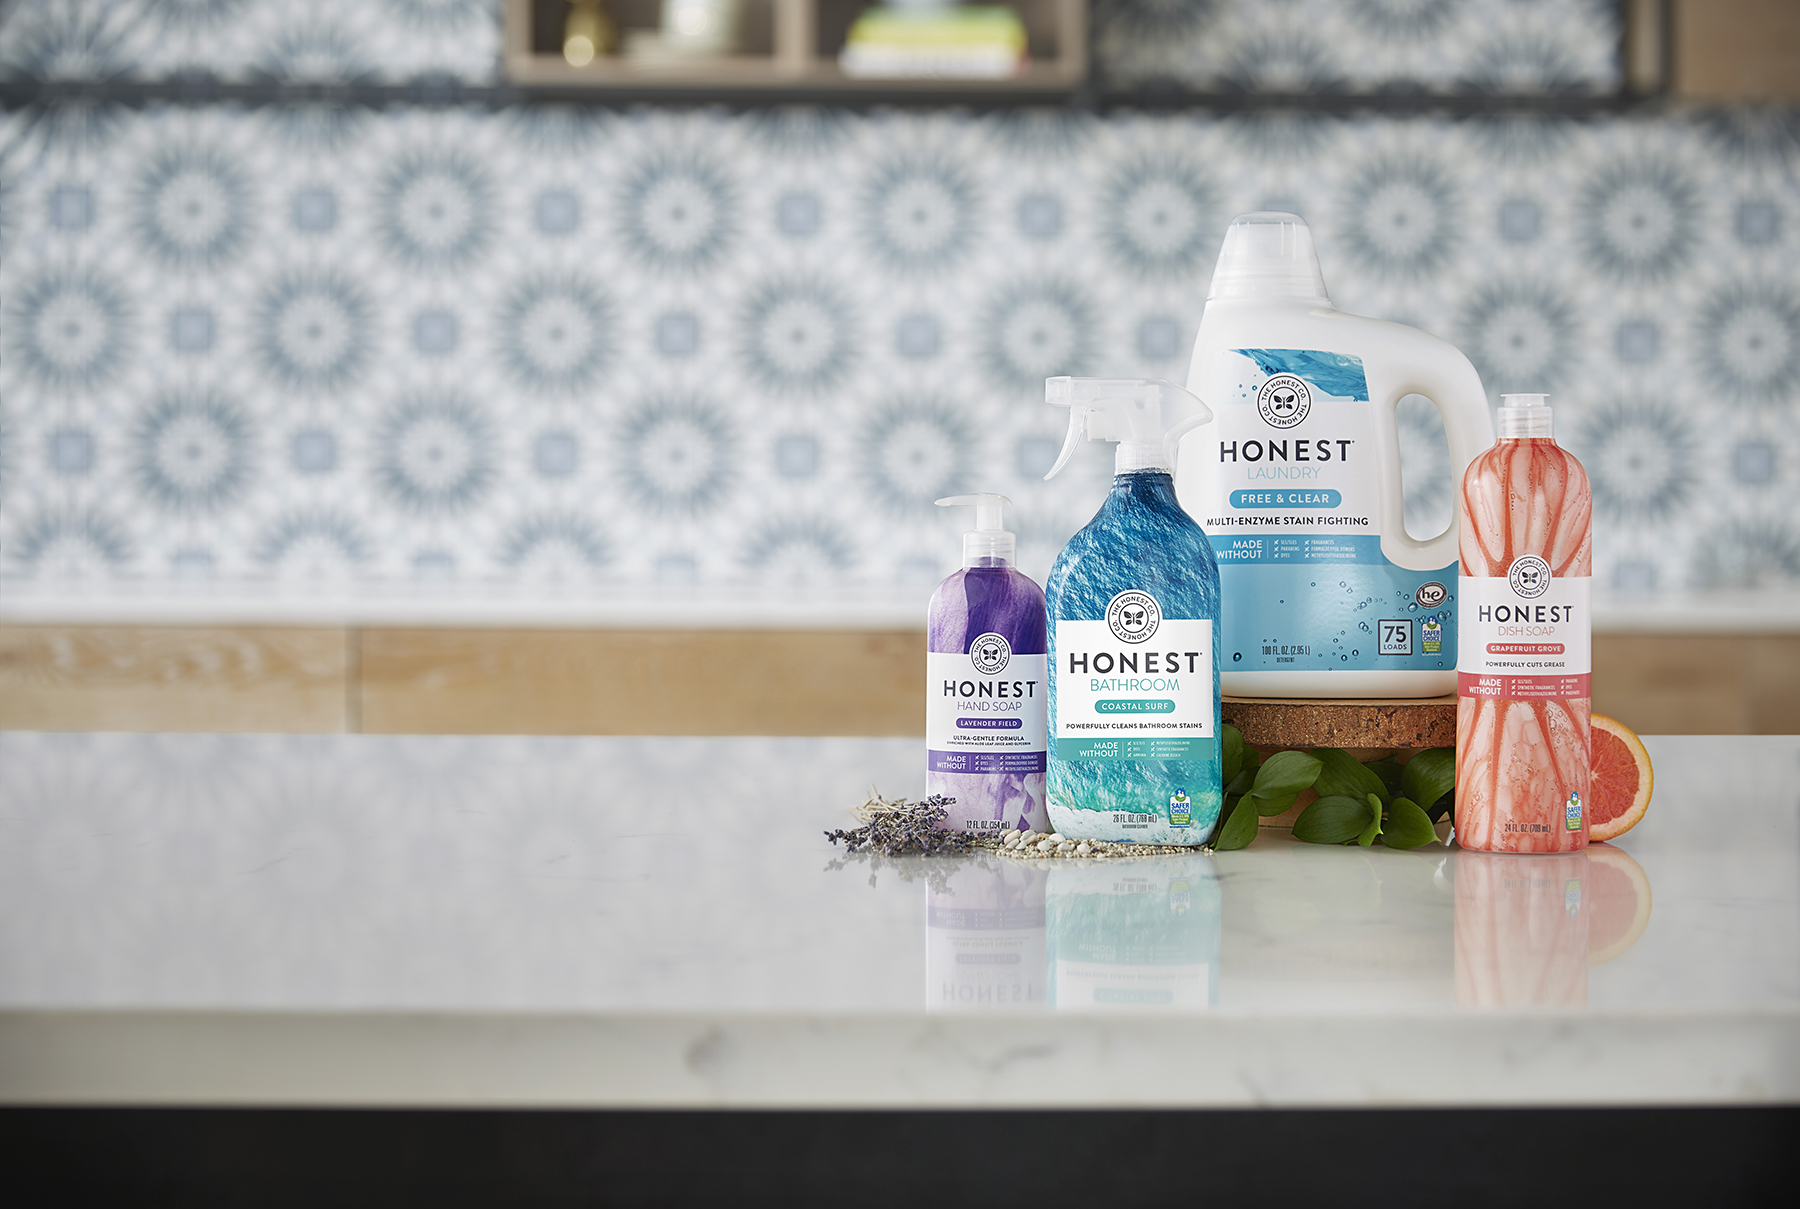 The Honest Co. clean